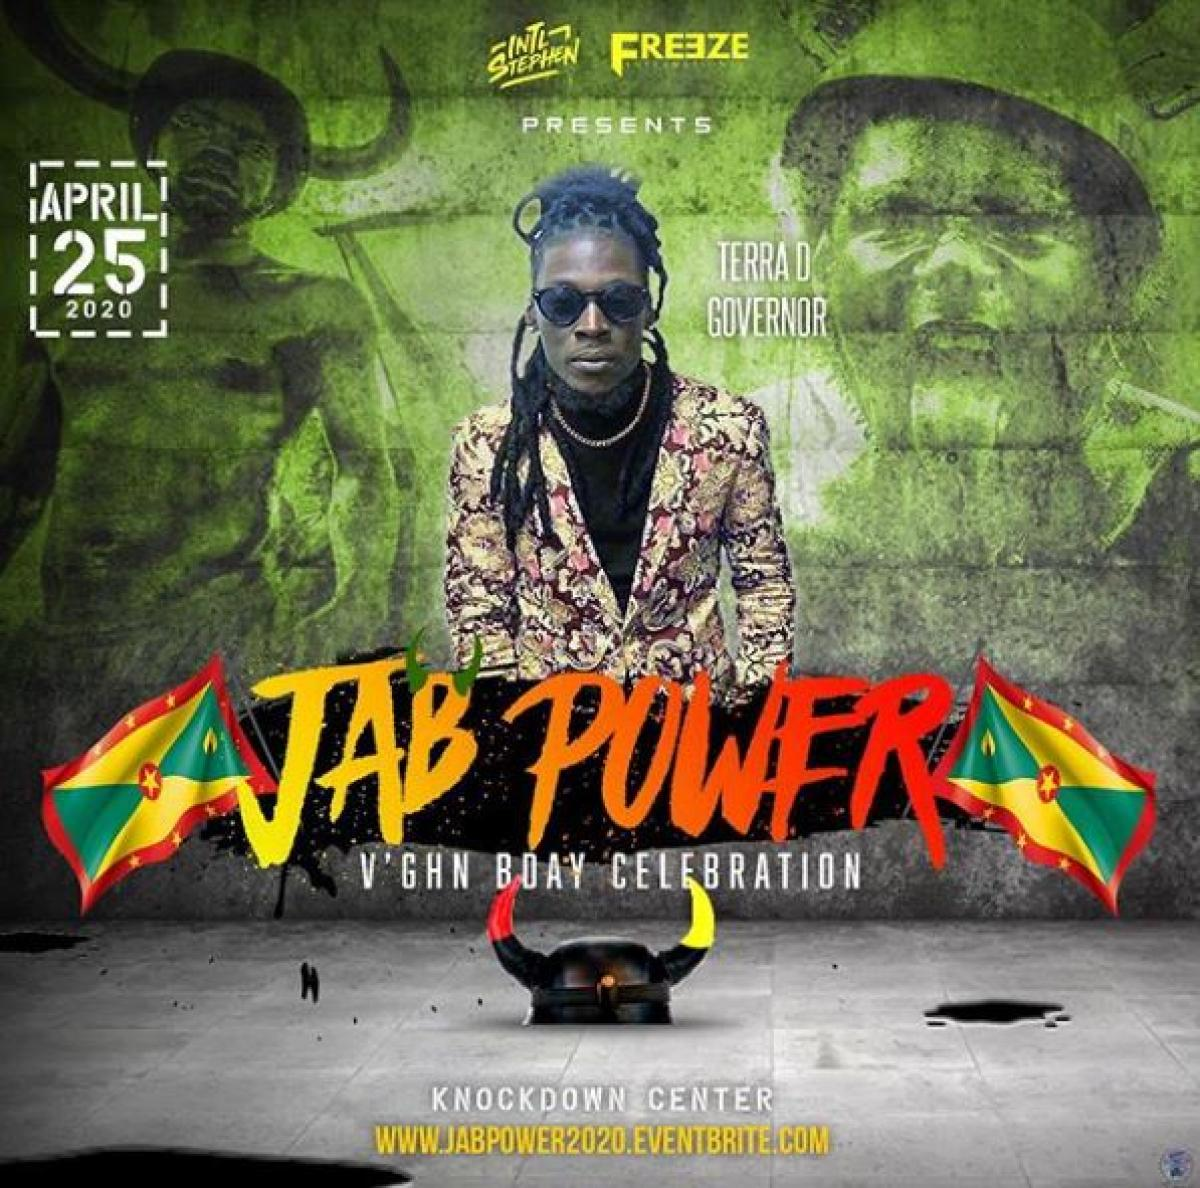 Jab Power flyer or graphic.